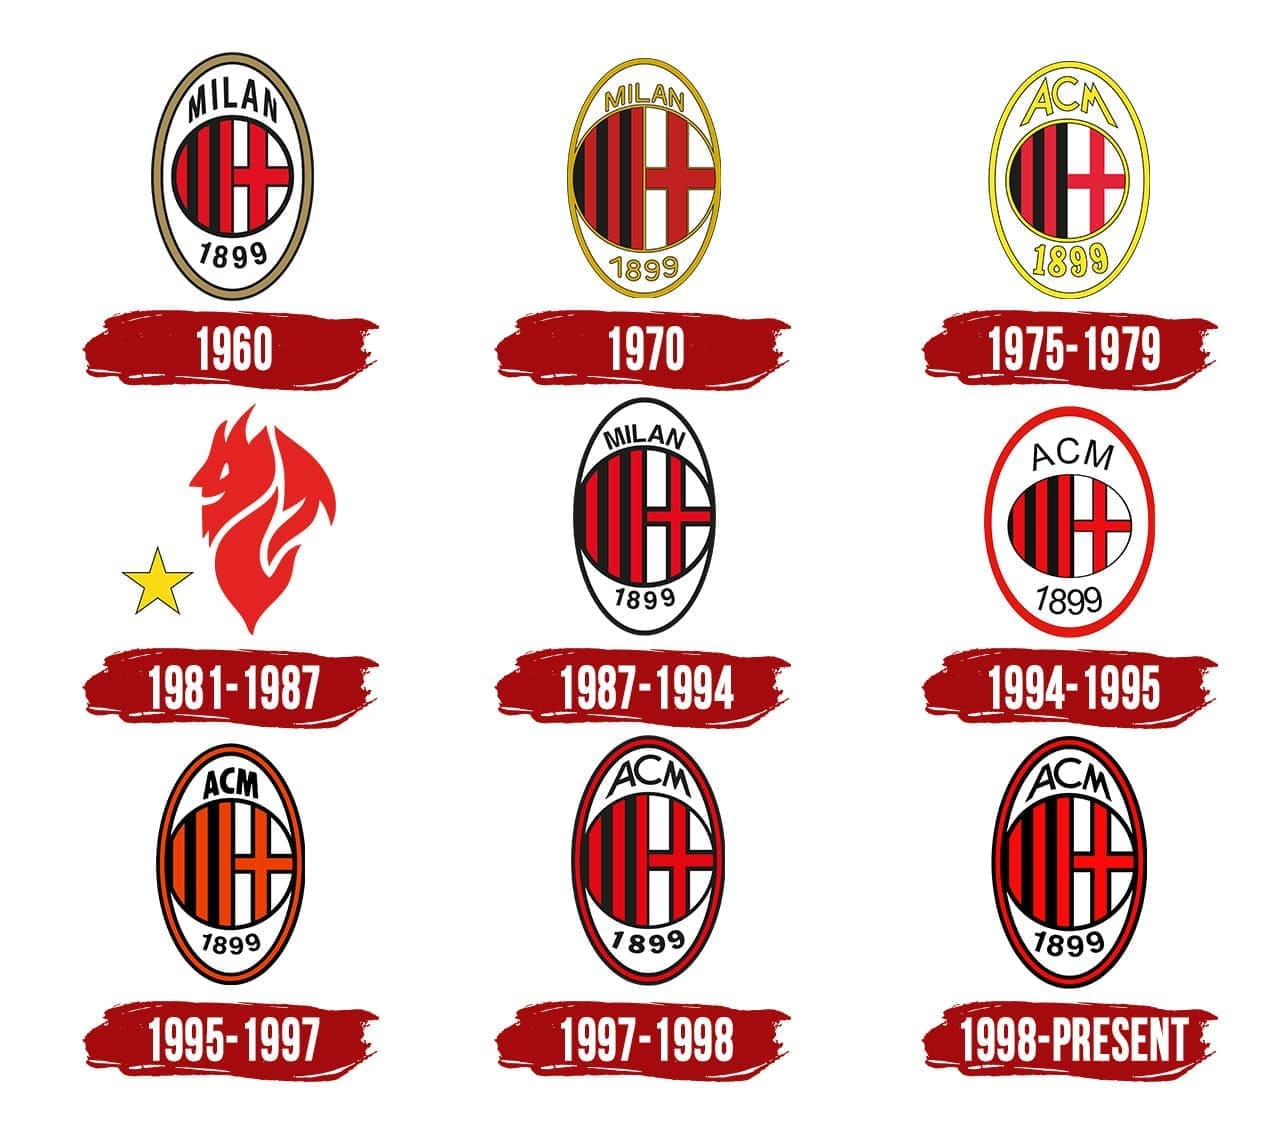 Milan Logo | The most famous brands and company logos in the world